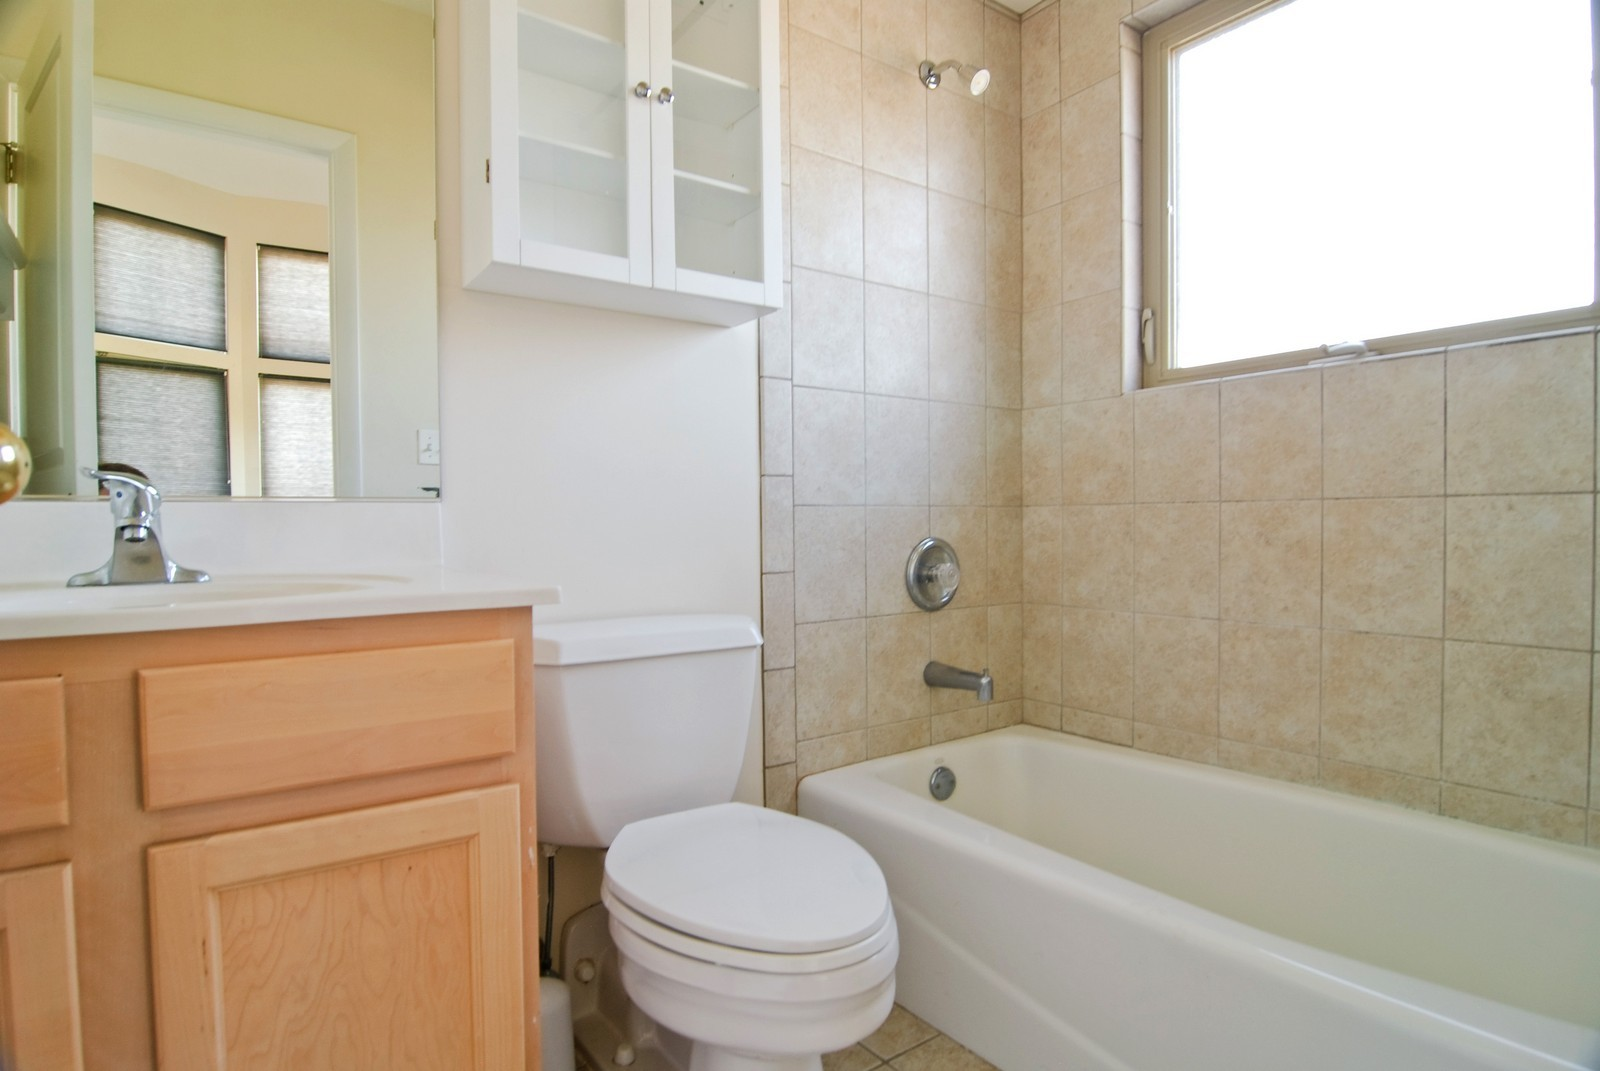 Real Estate Photography - 827 Dunlop, Forest Park, IL, 60130 - Master Bathroom